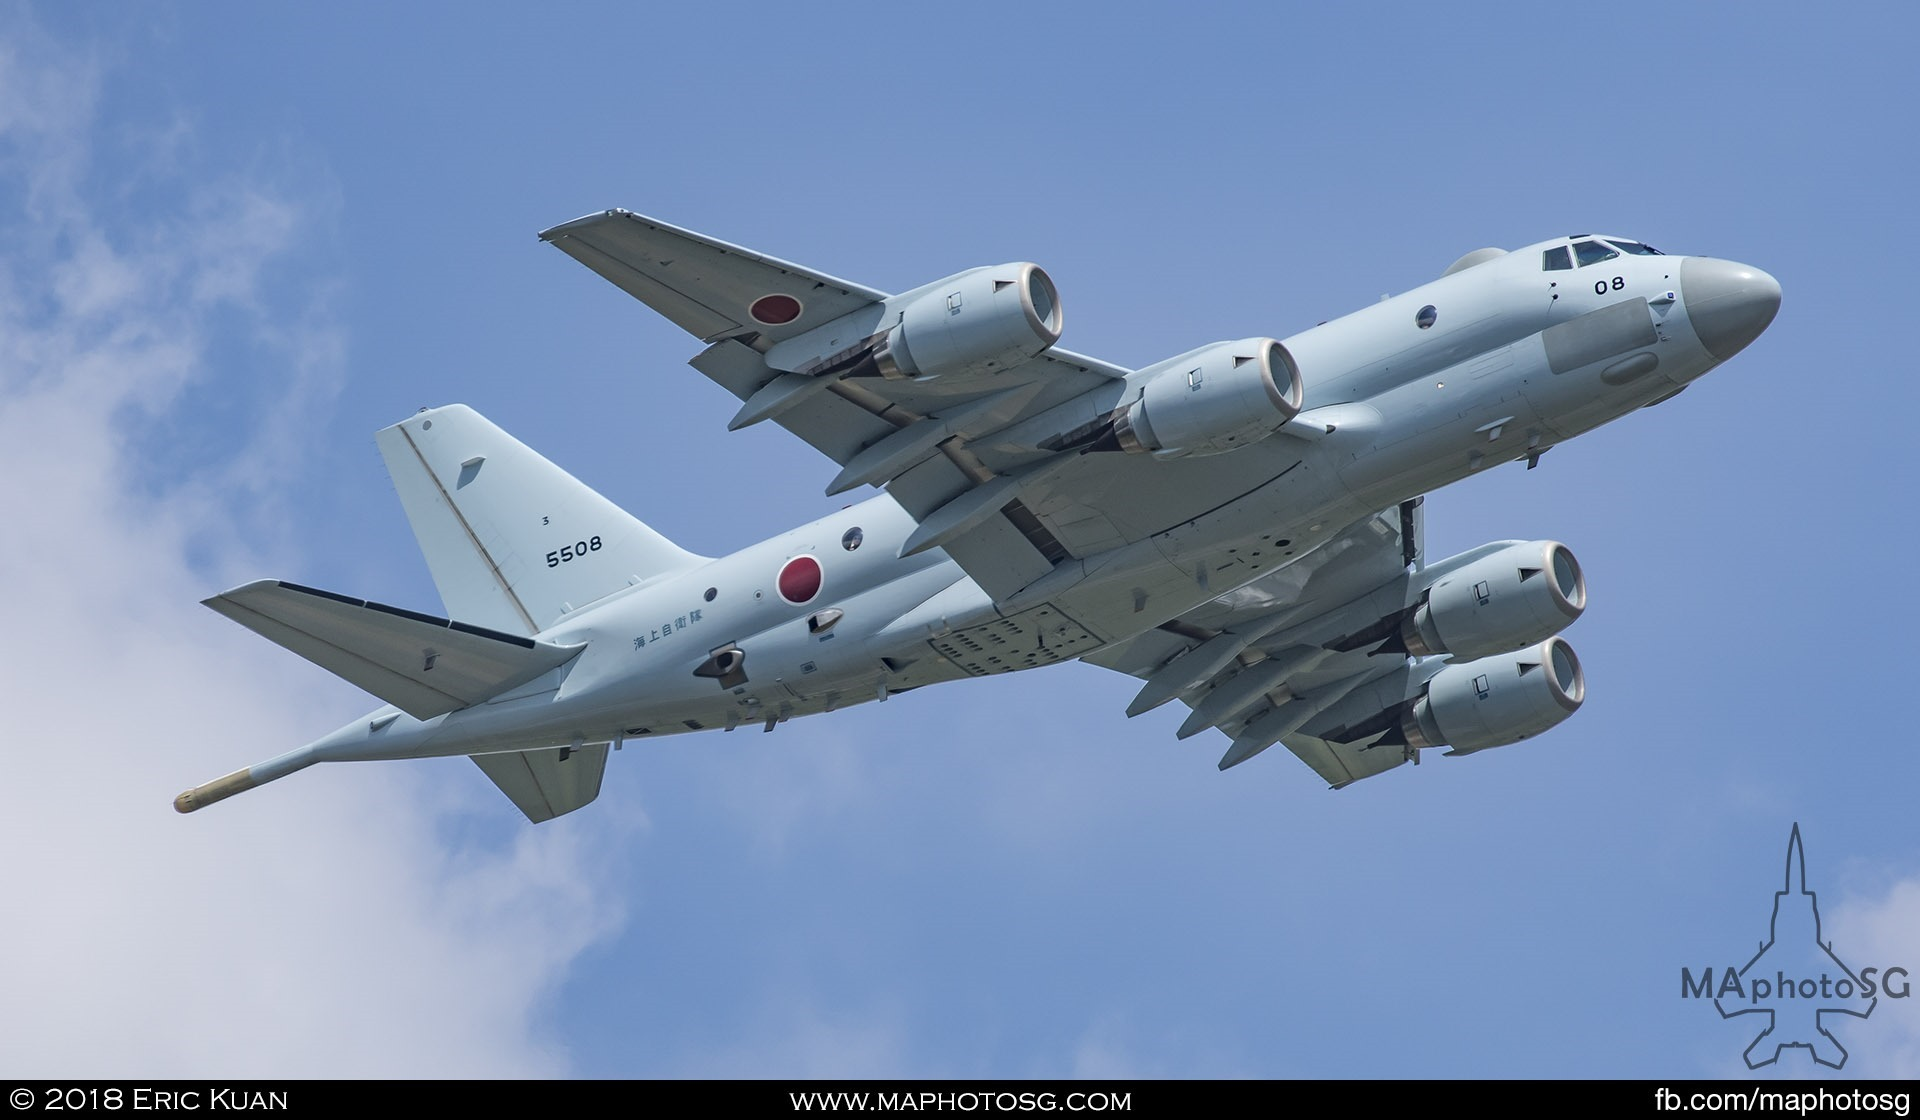 JMSDF Kawasaki P-1 (5508) takes off from Paya Lebar Air Base. Sonobouy launchers can be seen in the bottom of the fuselage.